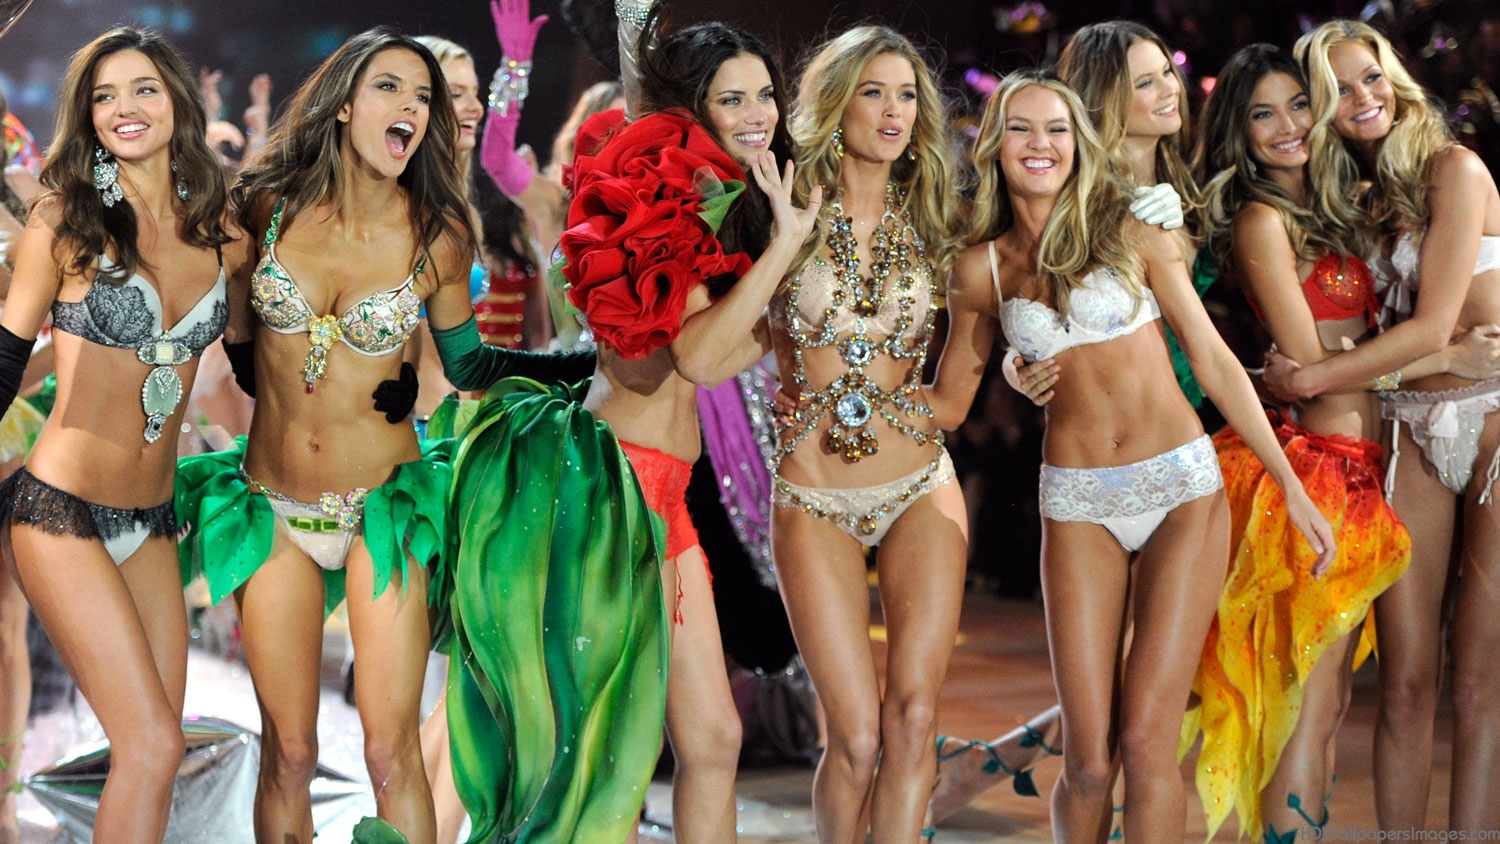 Victoria S Secret Fashion Show 2014 Wallpapers Hd Wallpapers